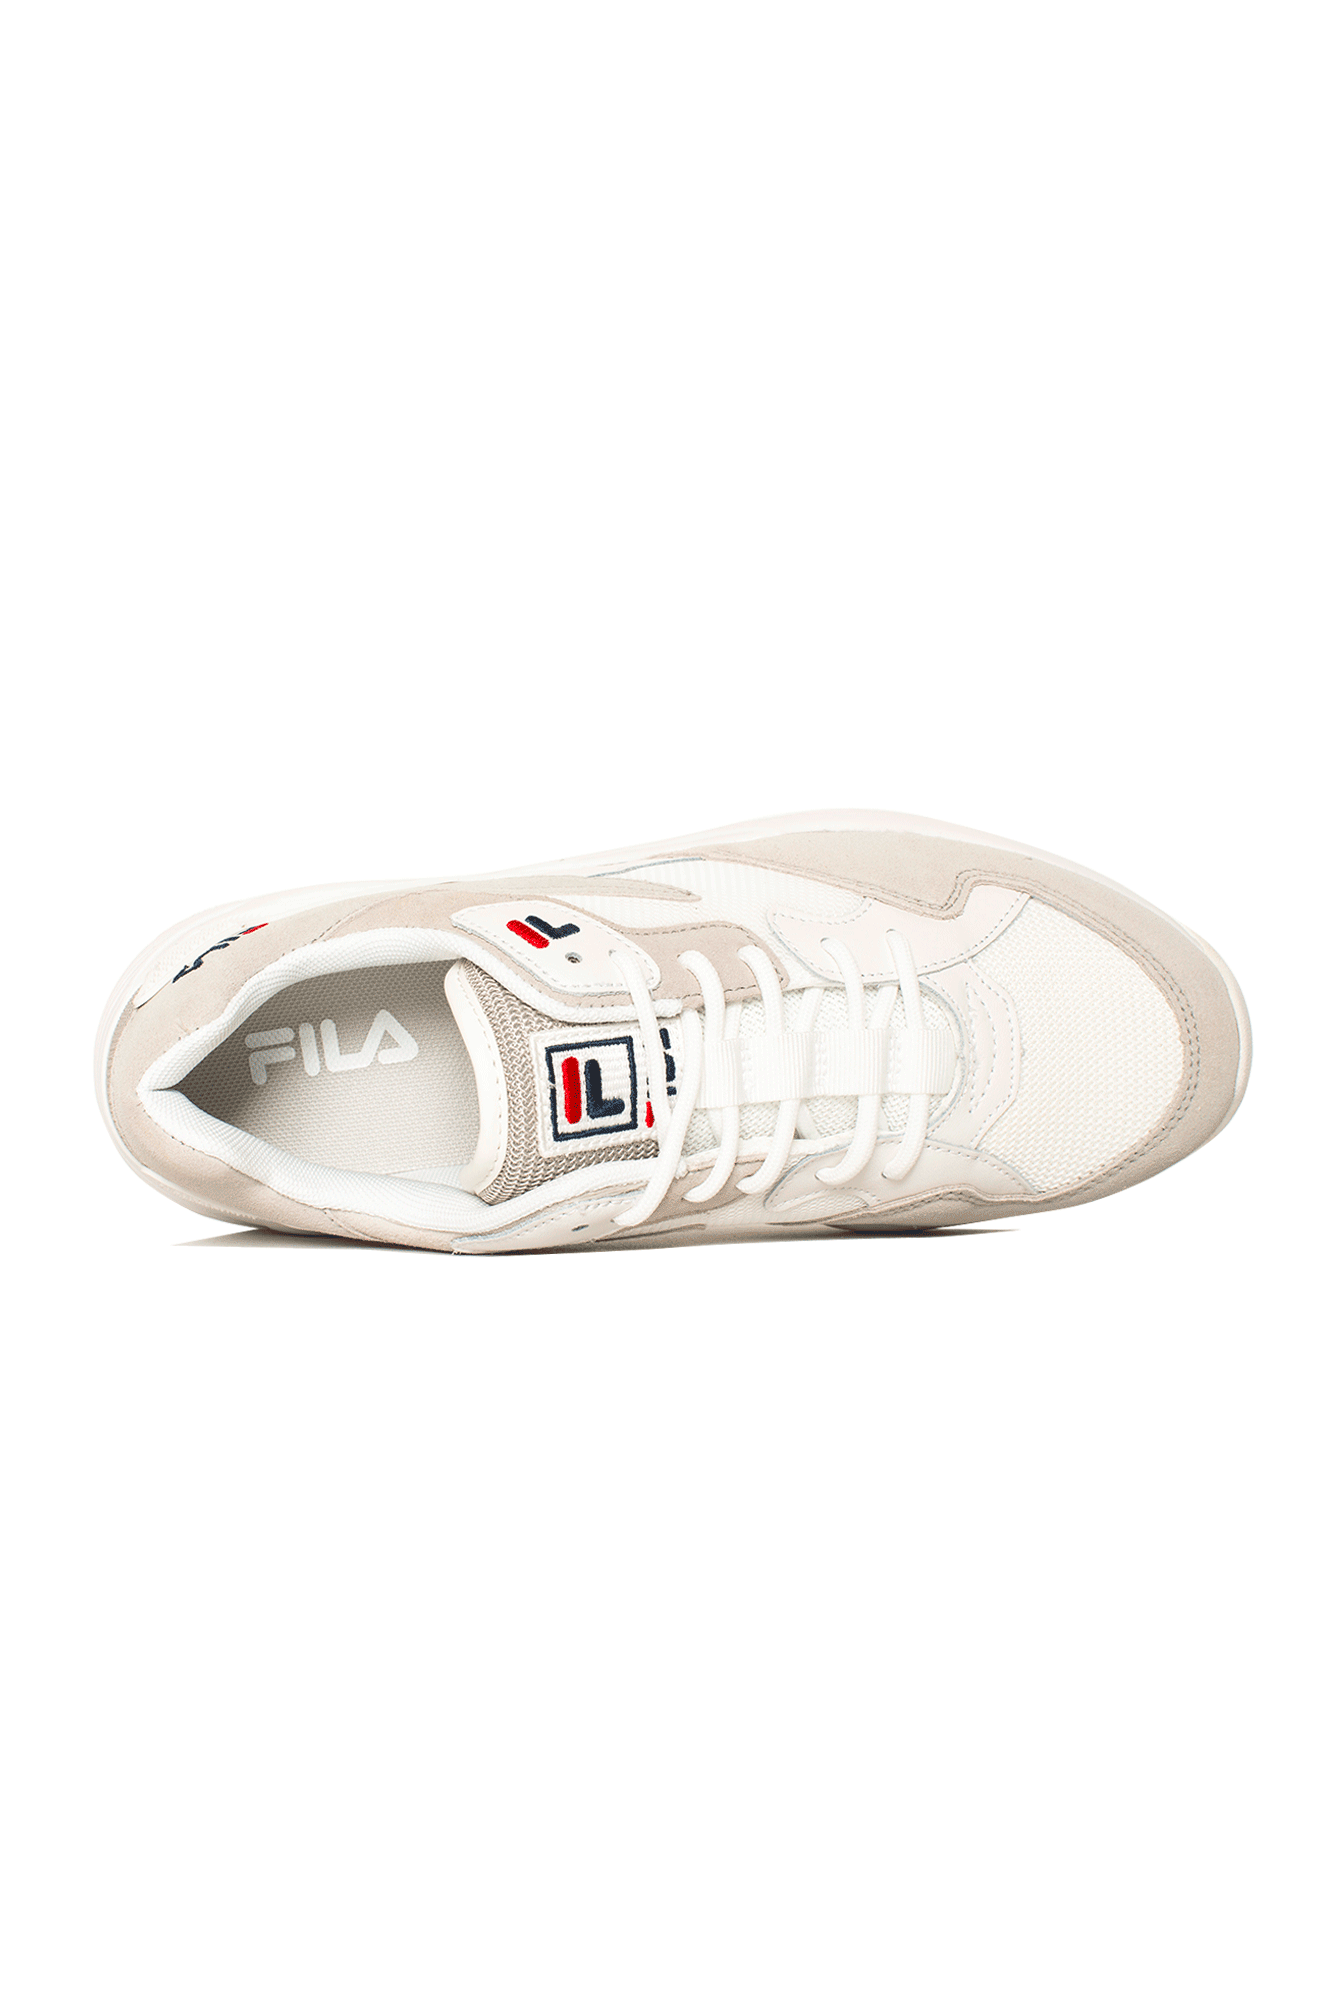 Fila Sneakers Vault CMR Jogger L Low Woman White 1010622#000#1FG#6 - One Block Down